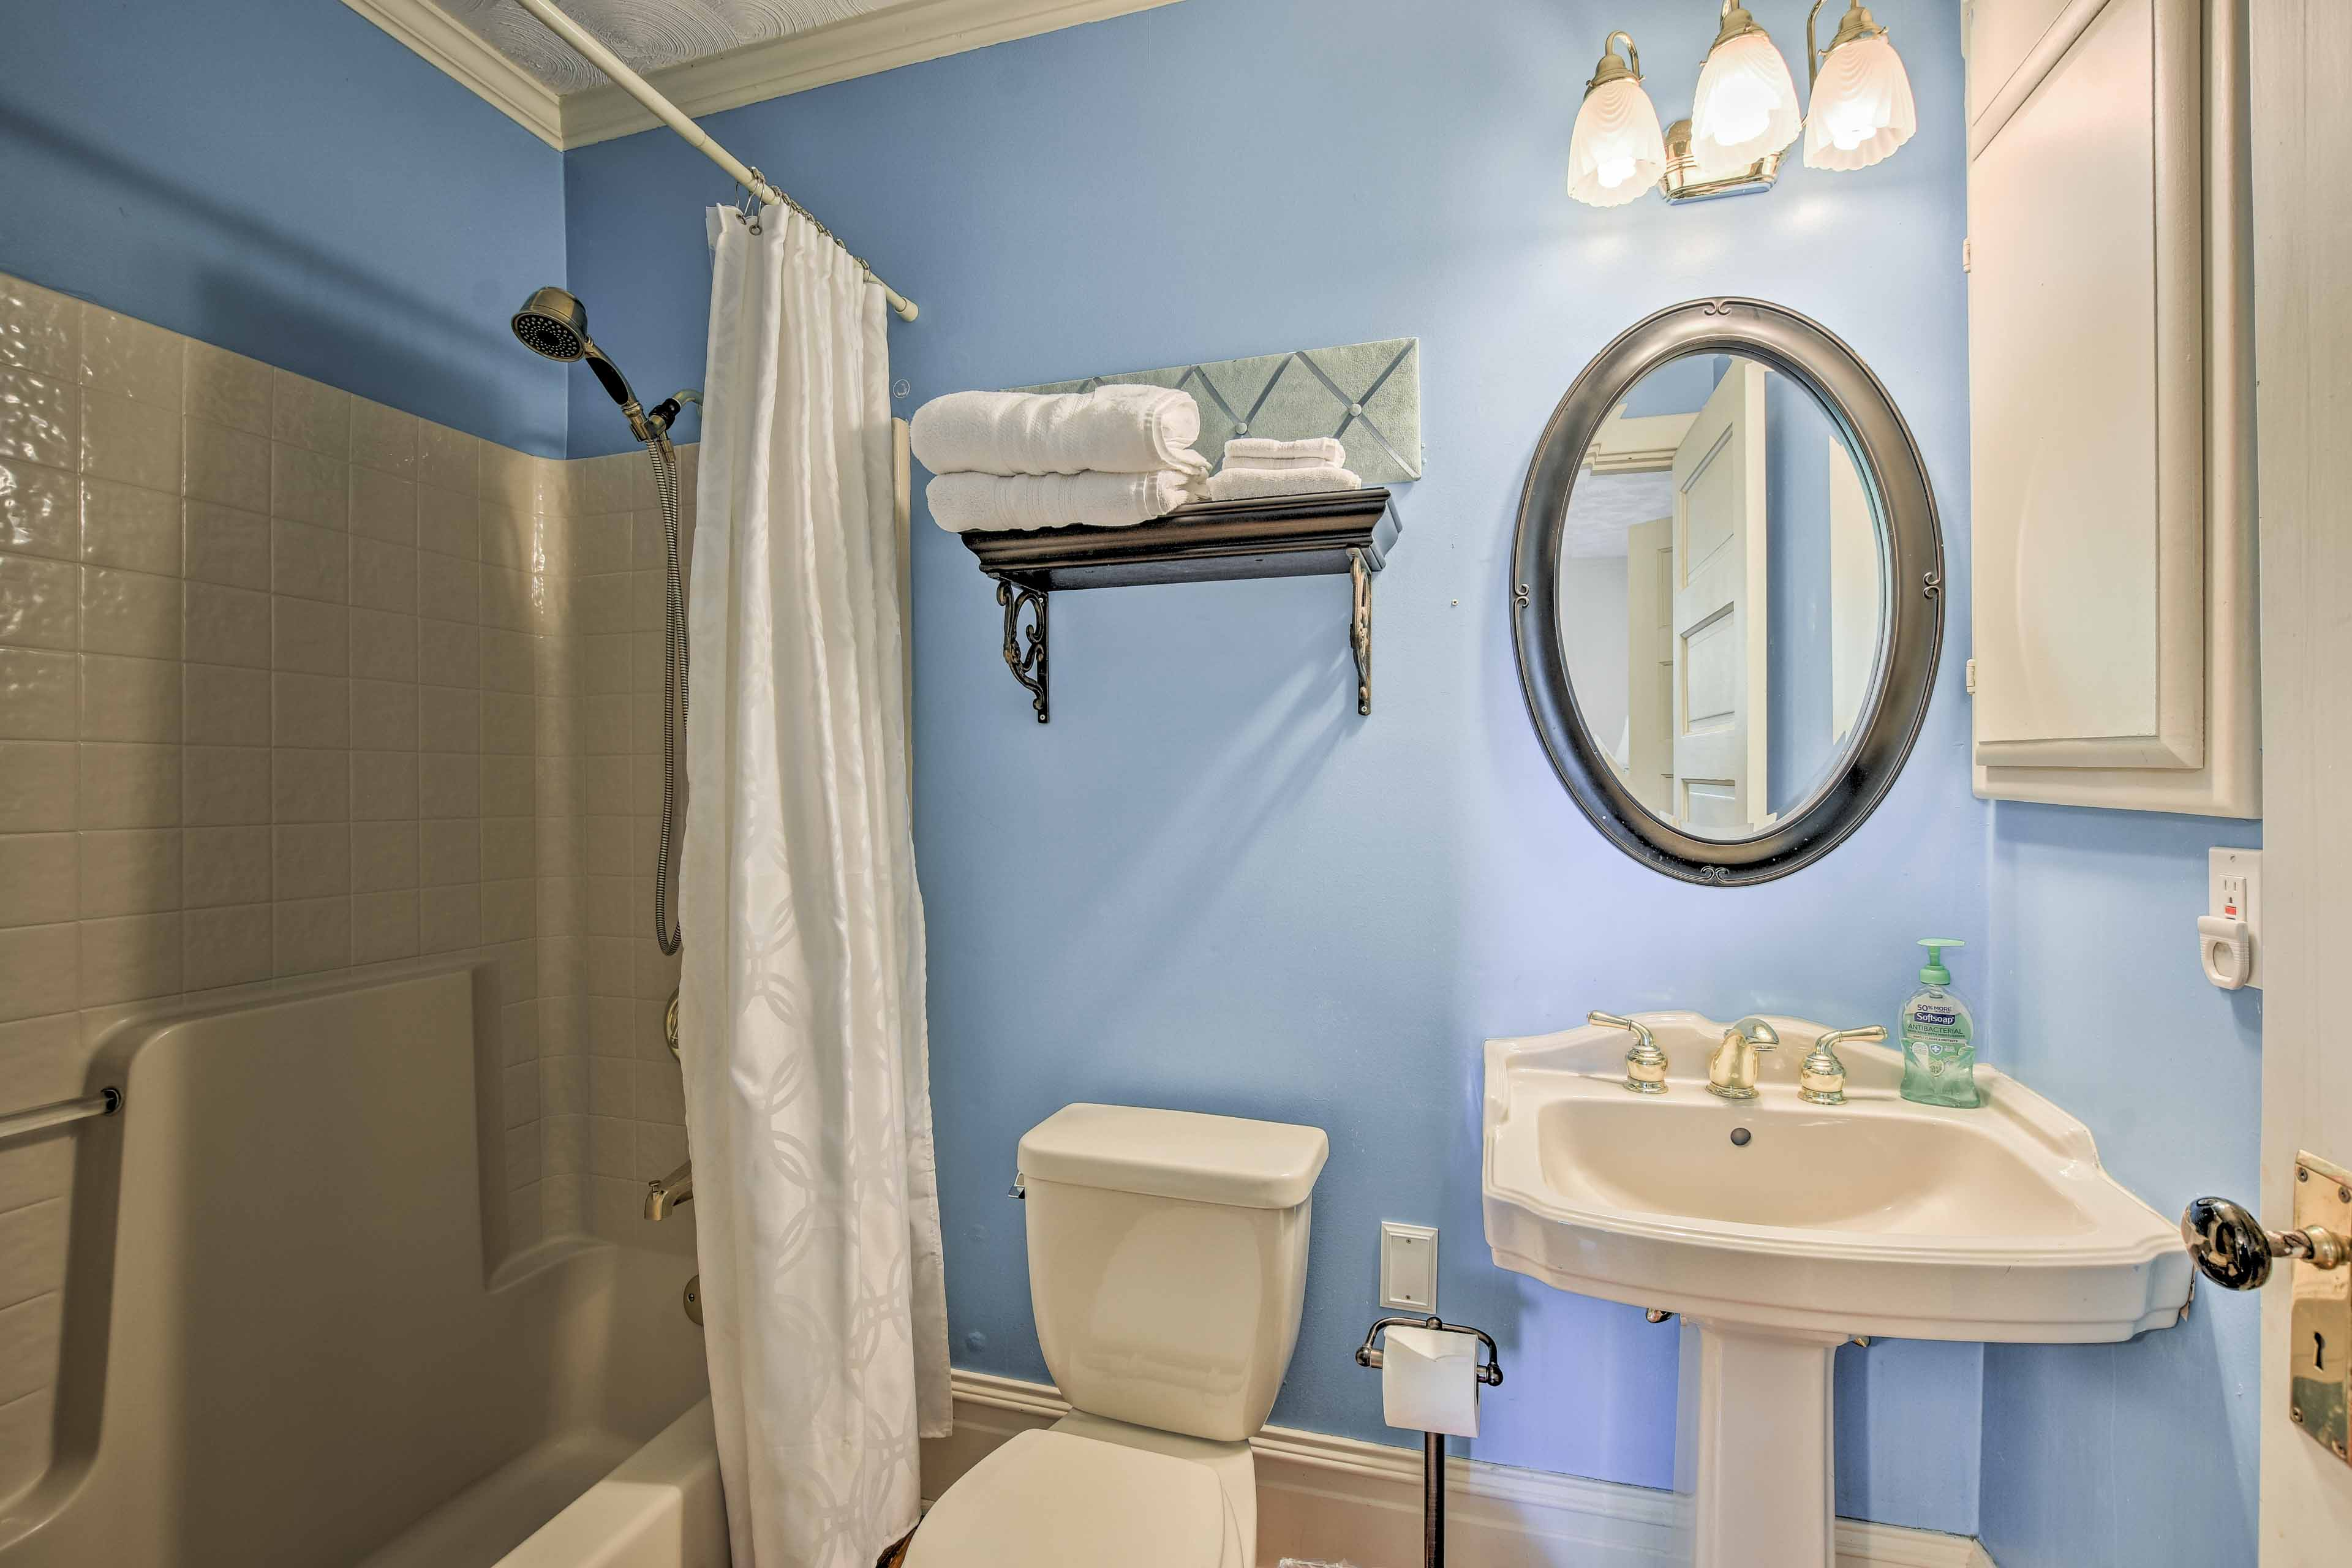 Freshen up for a night on the town in this full bathroom.